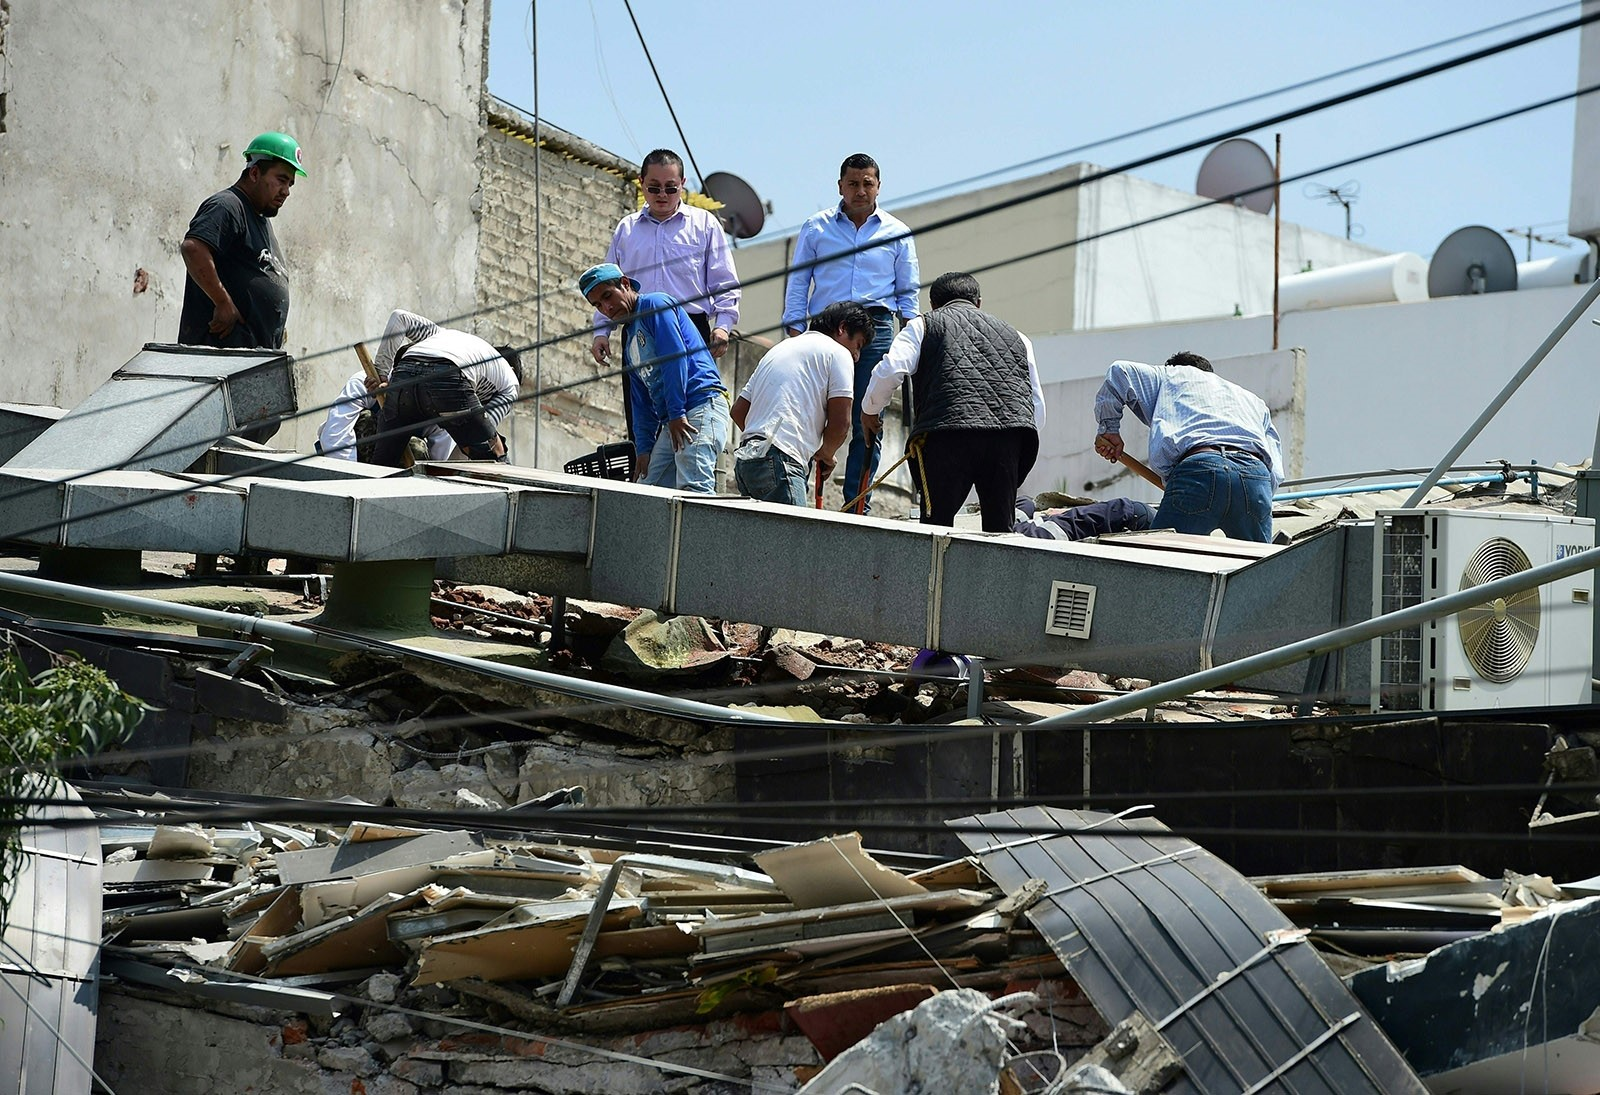 People look through debris of a building which collapsed when  quake rattled Mexico City on September 19, 2017. (AFP Photo)